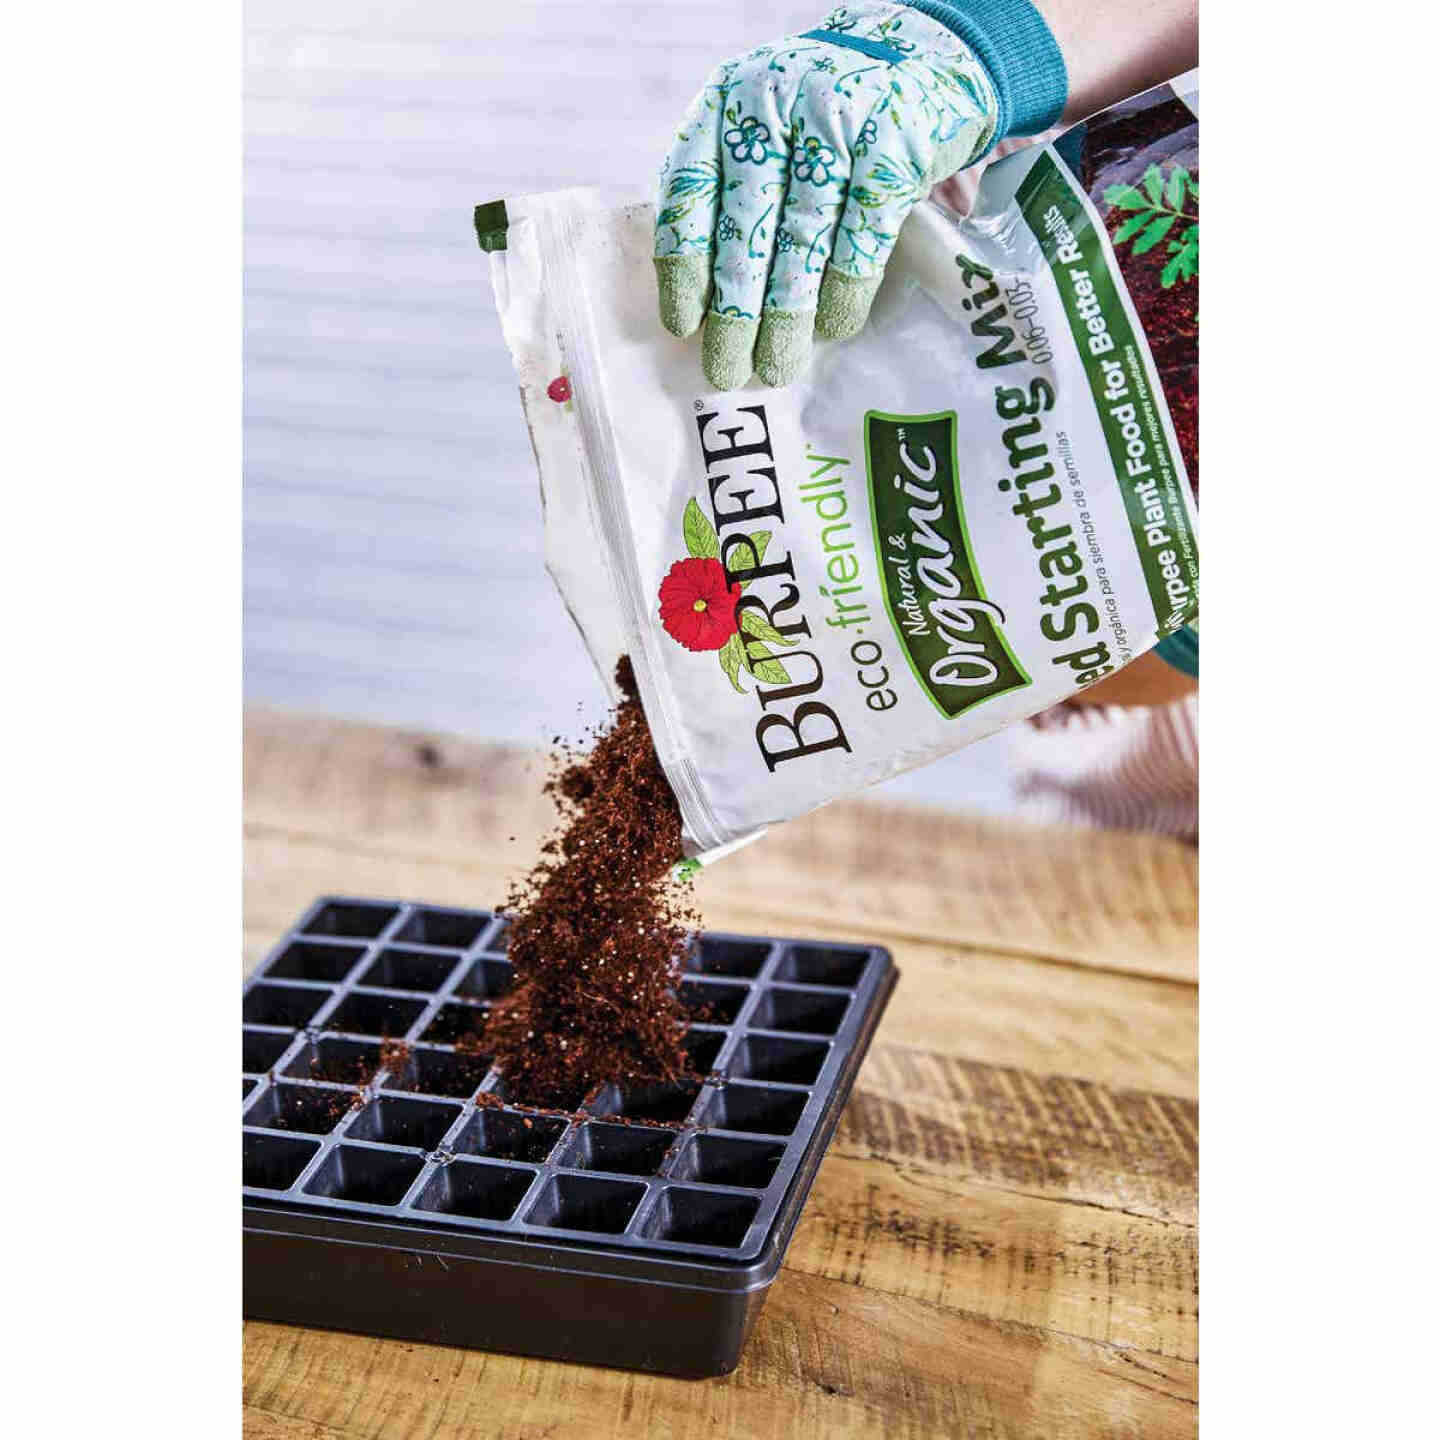 Burpee 8 Qt. 6 Lb. All Purpose Container Organic Seed Starting Mix Image 2